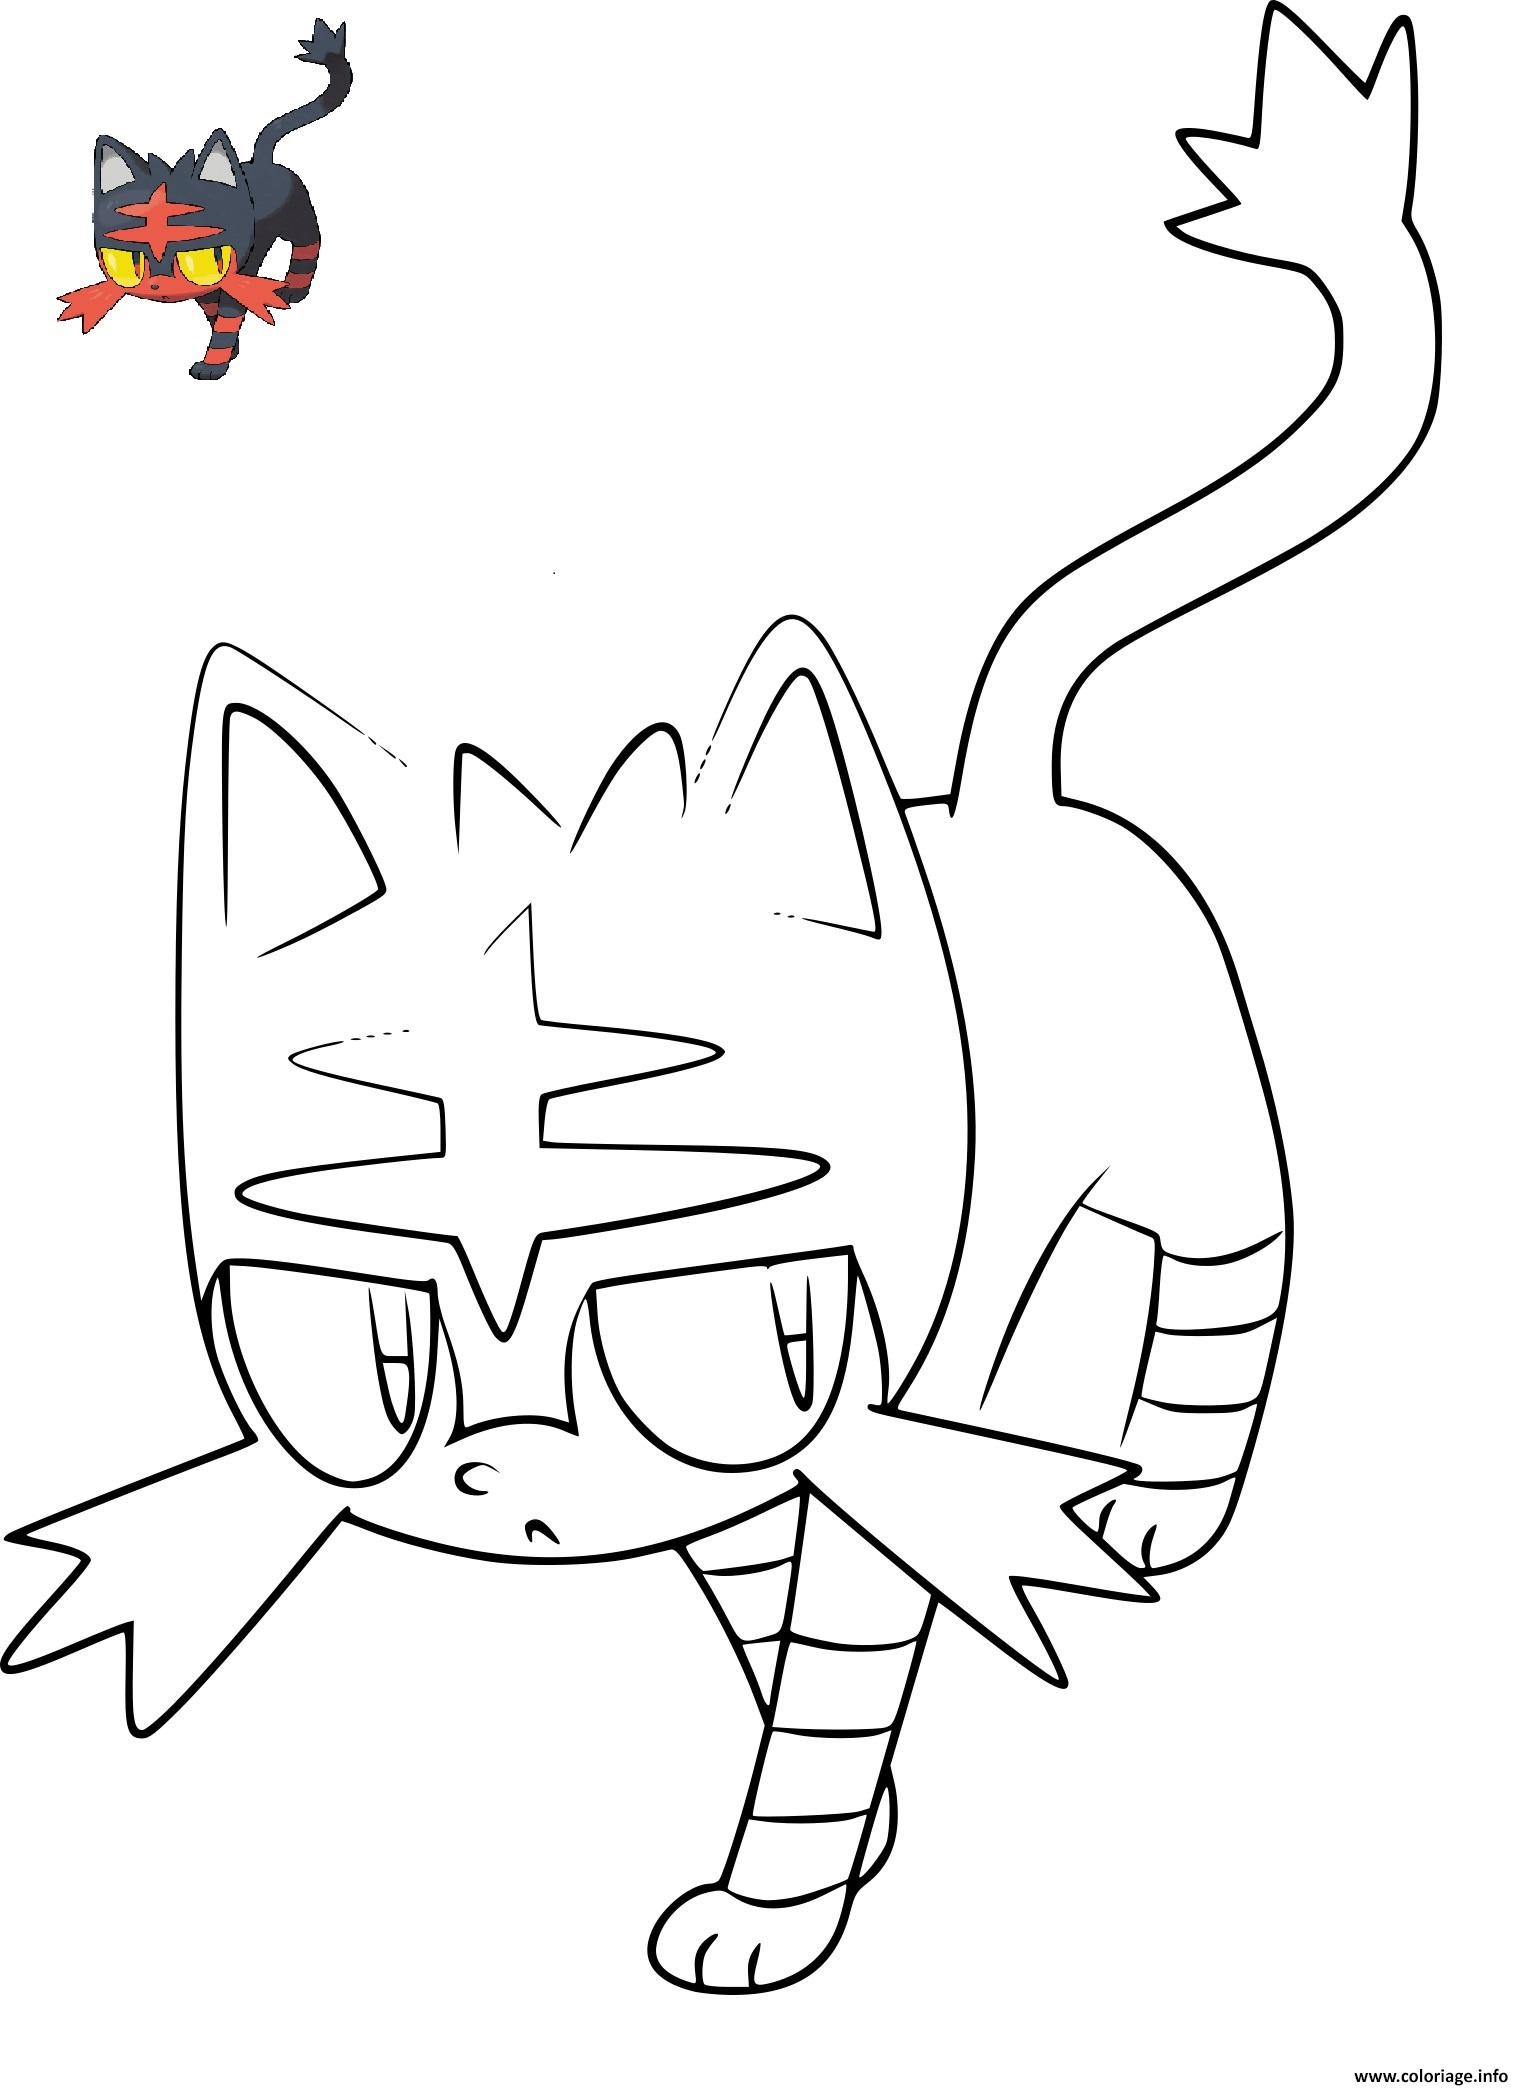 Coloriage pokemon flamiaou dessin - Dessins a colorier gratuit ...